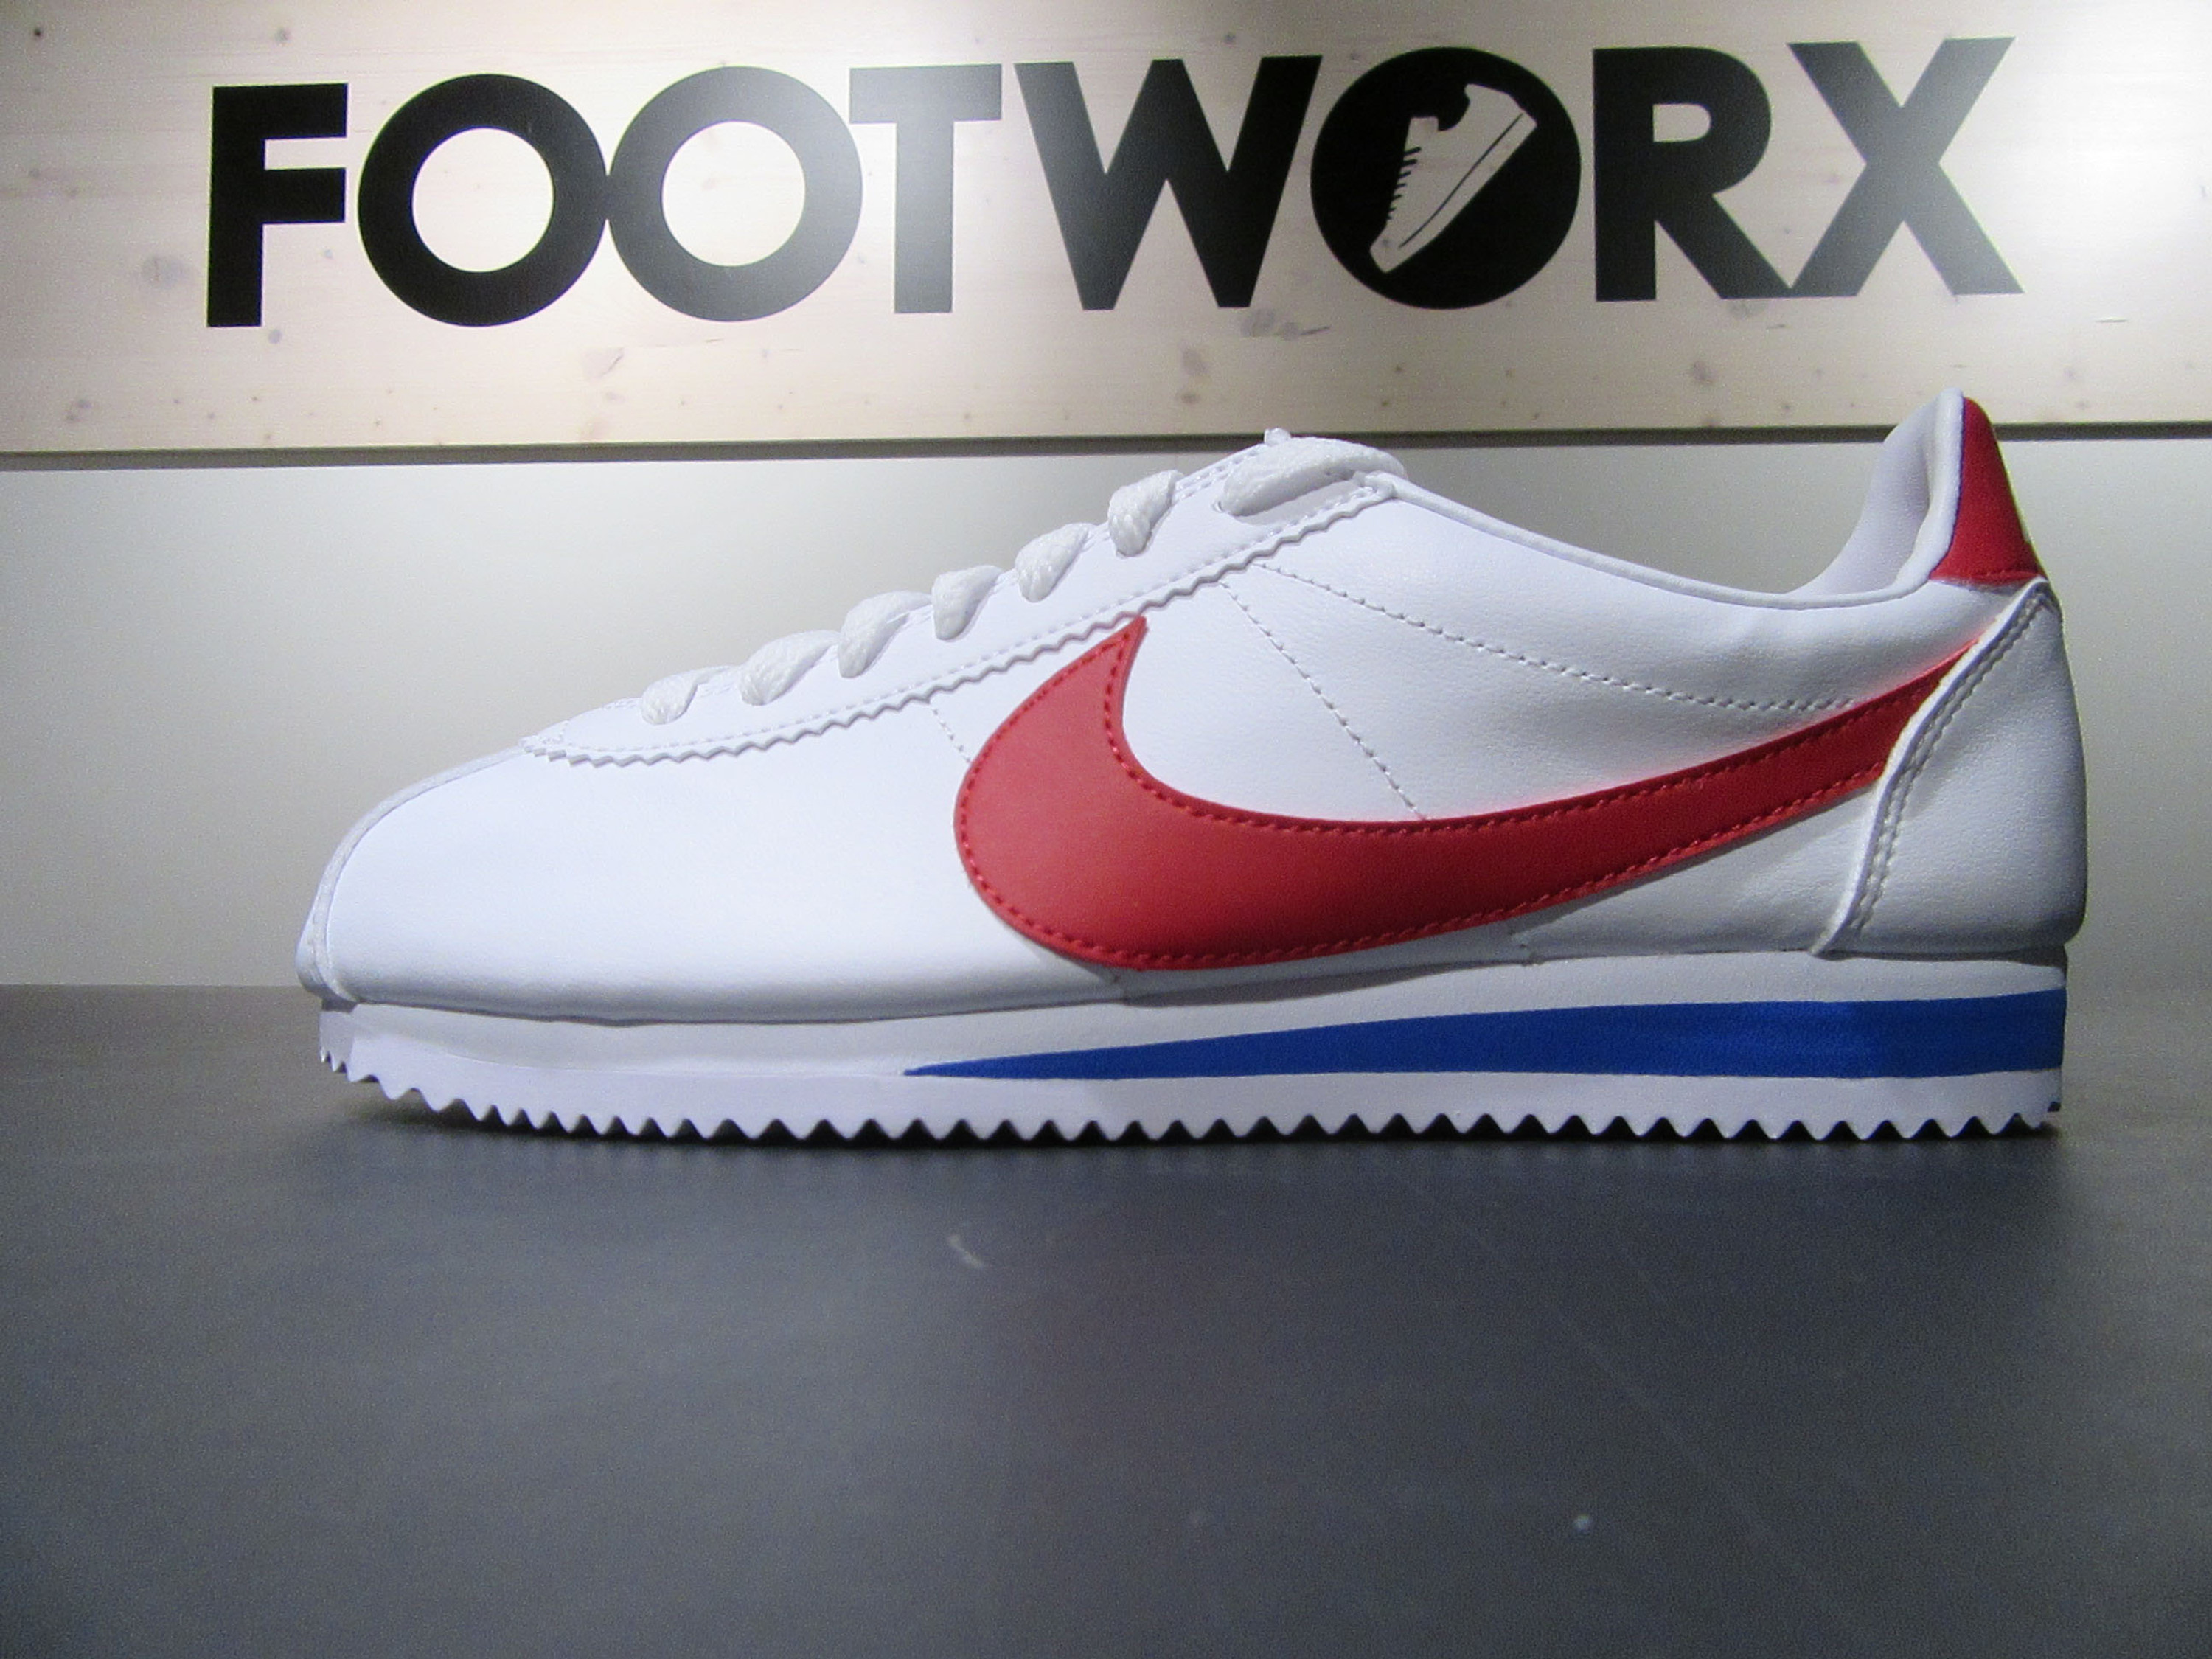 7fc46ea6611efc ... shop nike classic cortez leather retro vintage sneakers für damen in weiss  rot d7dc9 dc536